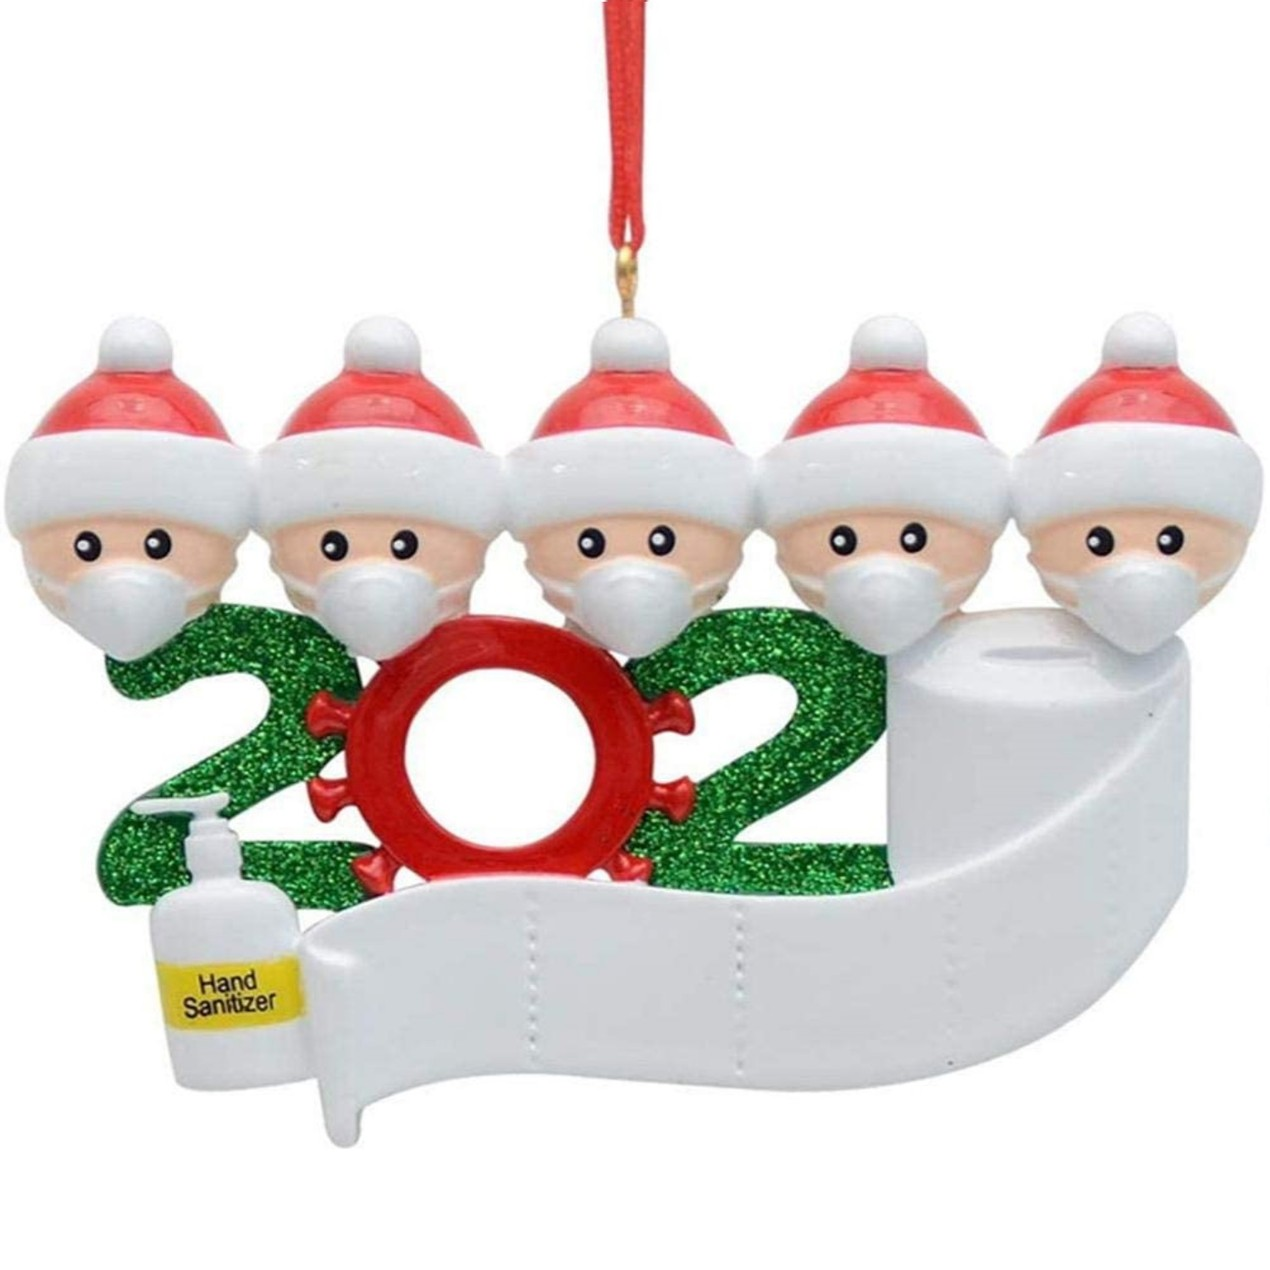 2020 Quarantine Family Personalized Christmas Ornaments